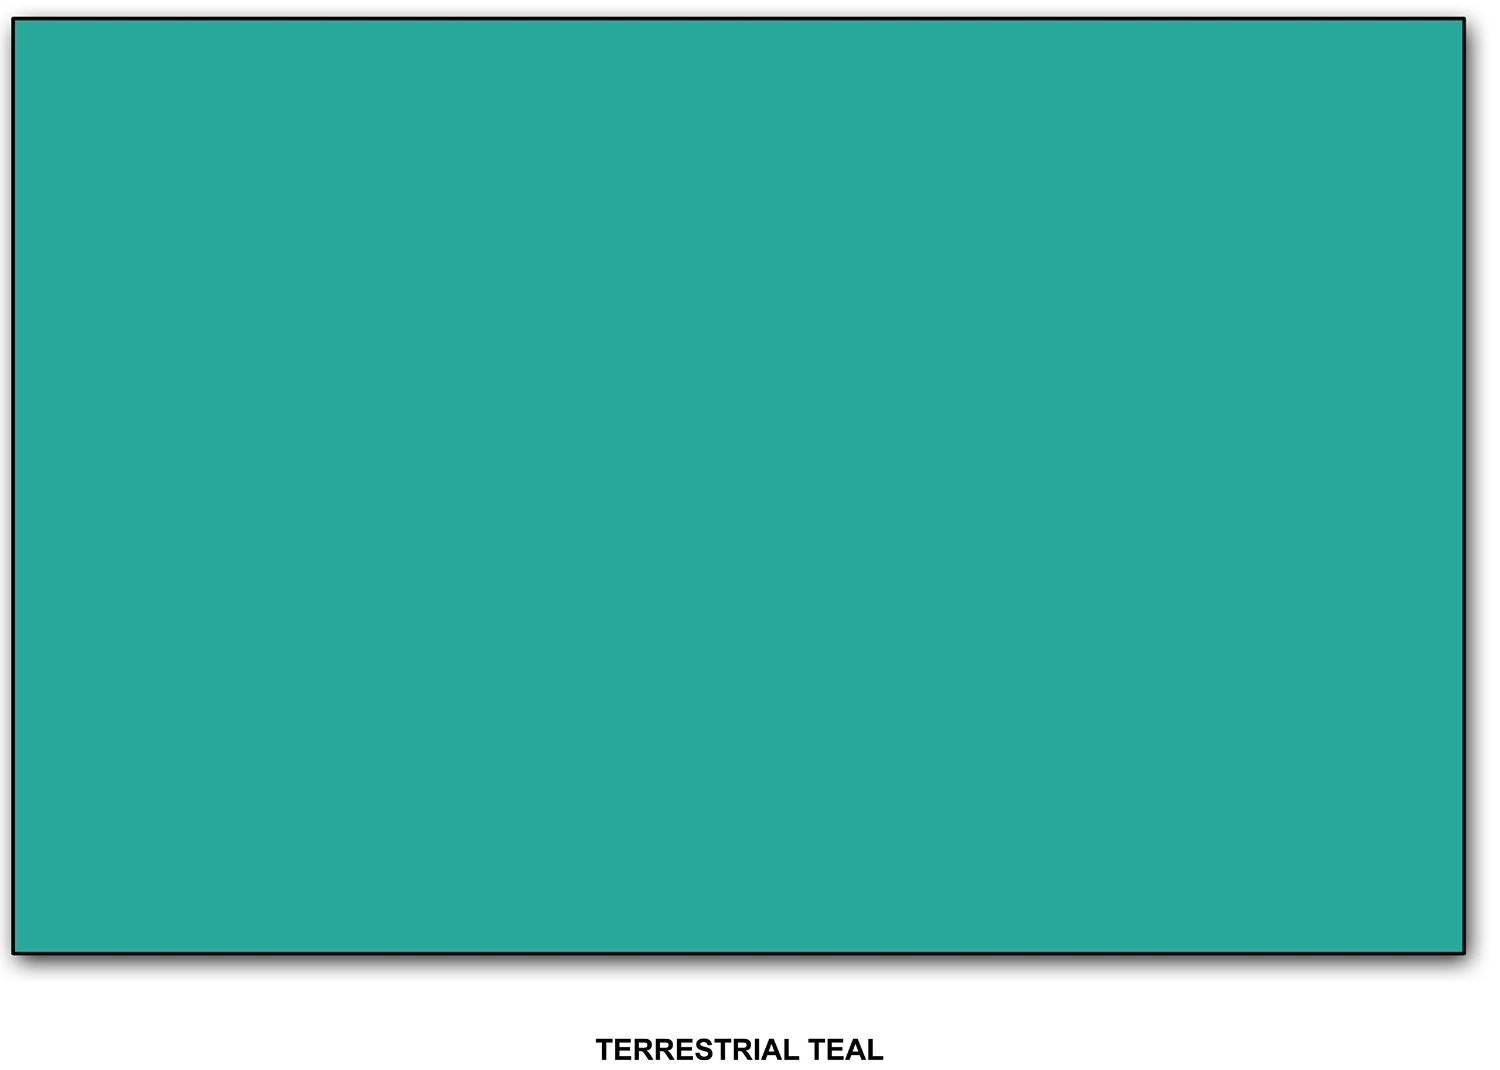 Terrestrial Teal - Neenah Astrobrights Premium Color Paper, 24 lb, 11 x 17 Inches, 100 Sheets per pack